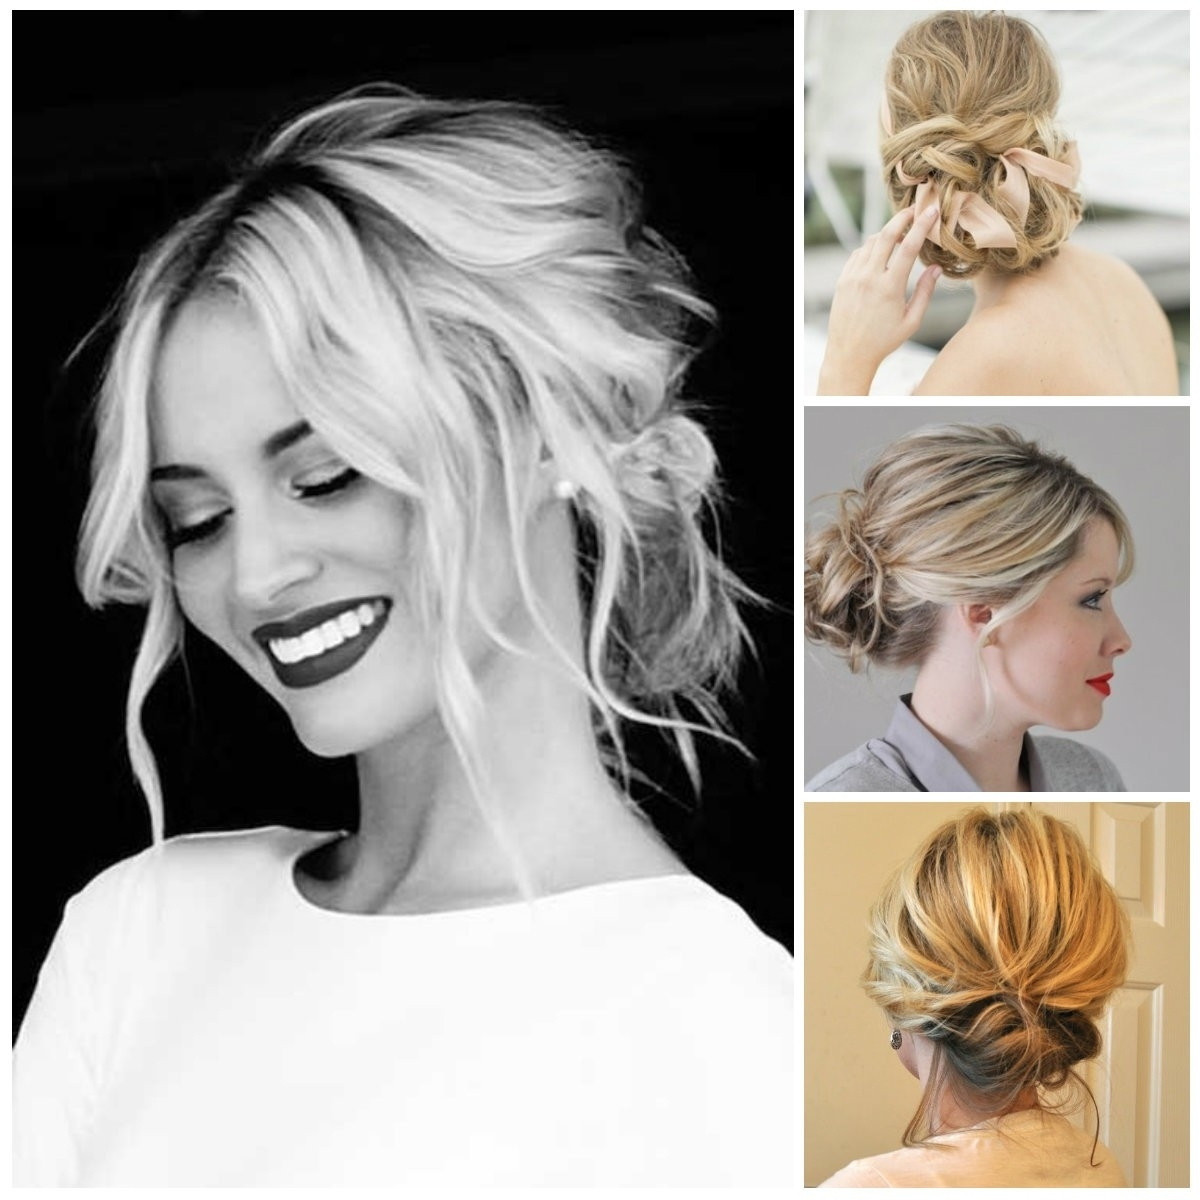 Widely Used Modern Wedding Hairstyles For Medium Length Hair Intended For Modern Updos For Medium Length Hair (View 3 of 15)